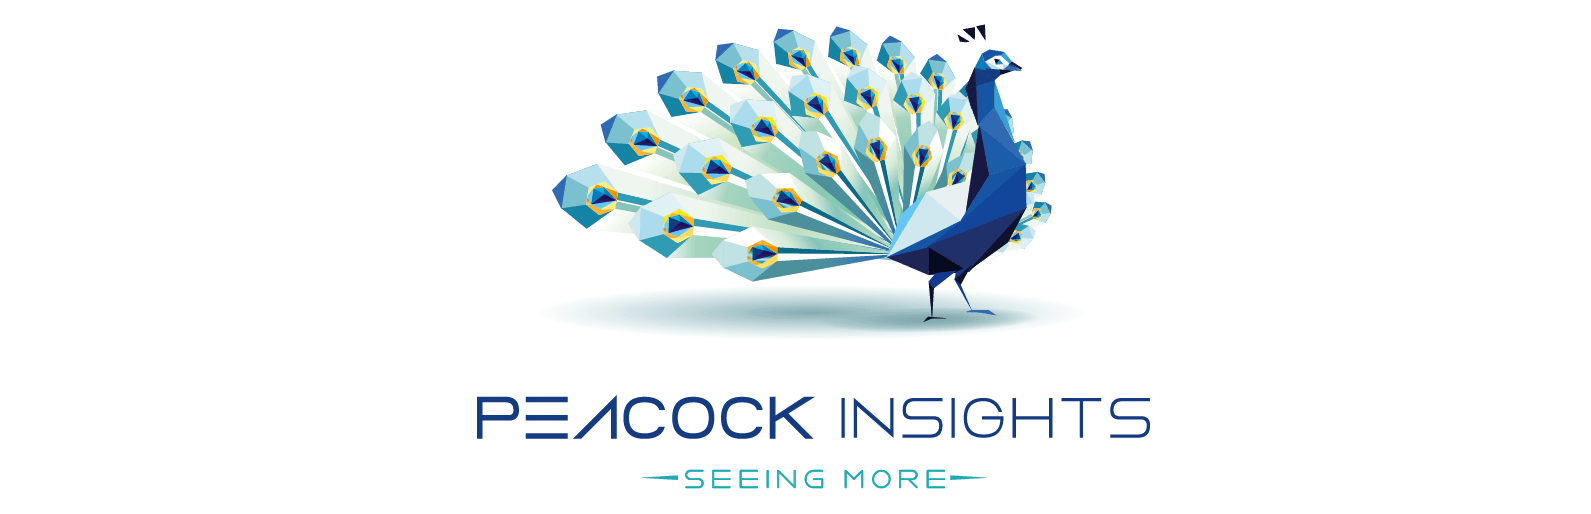 Peacock Insights